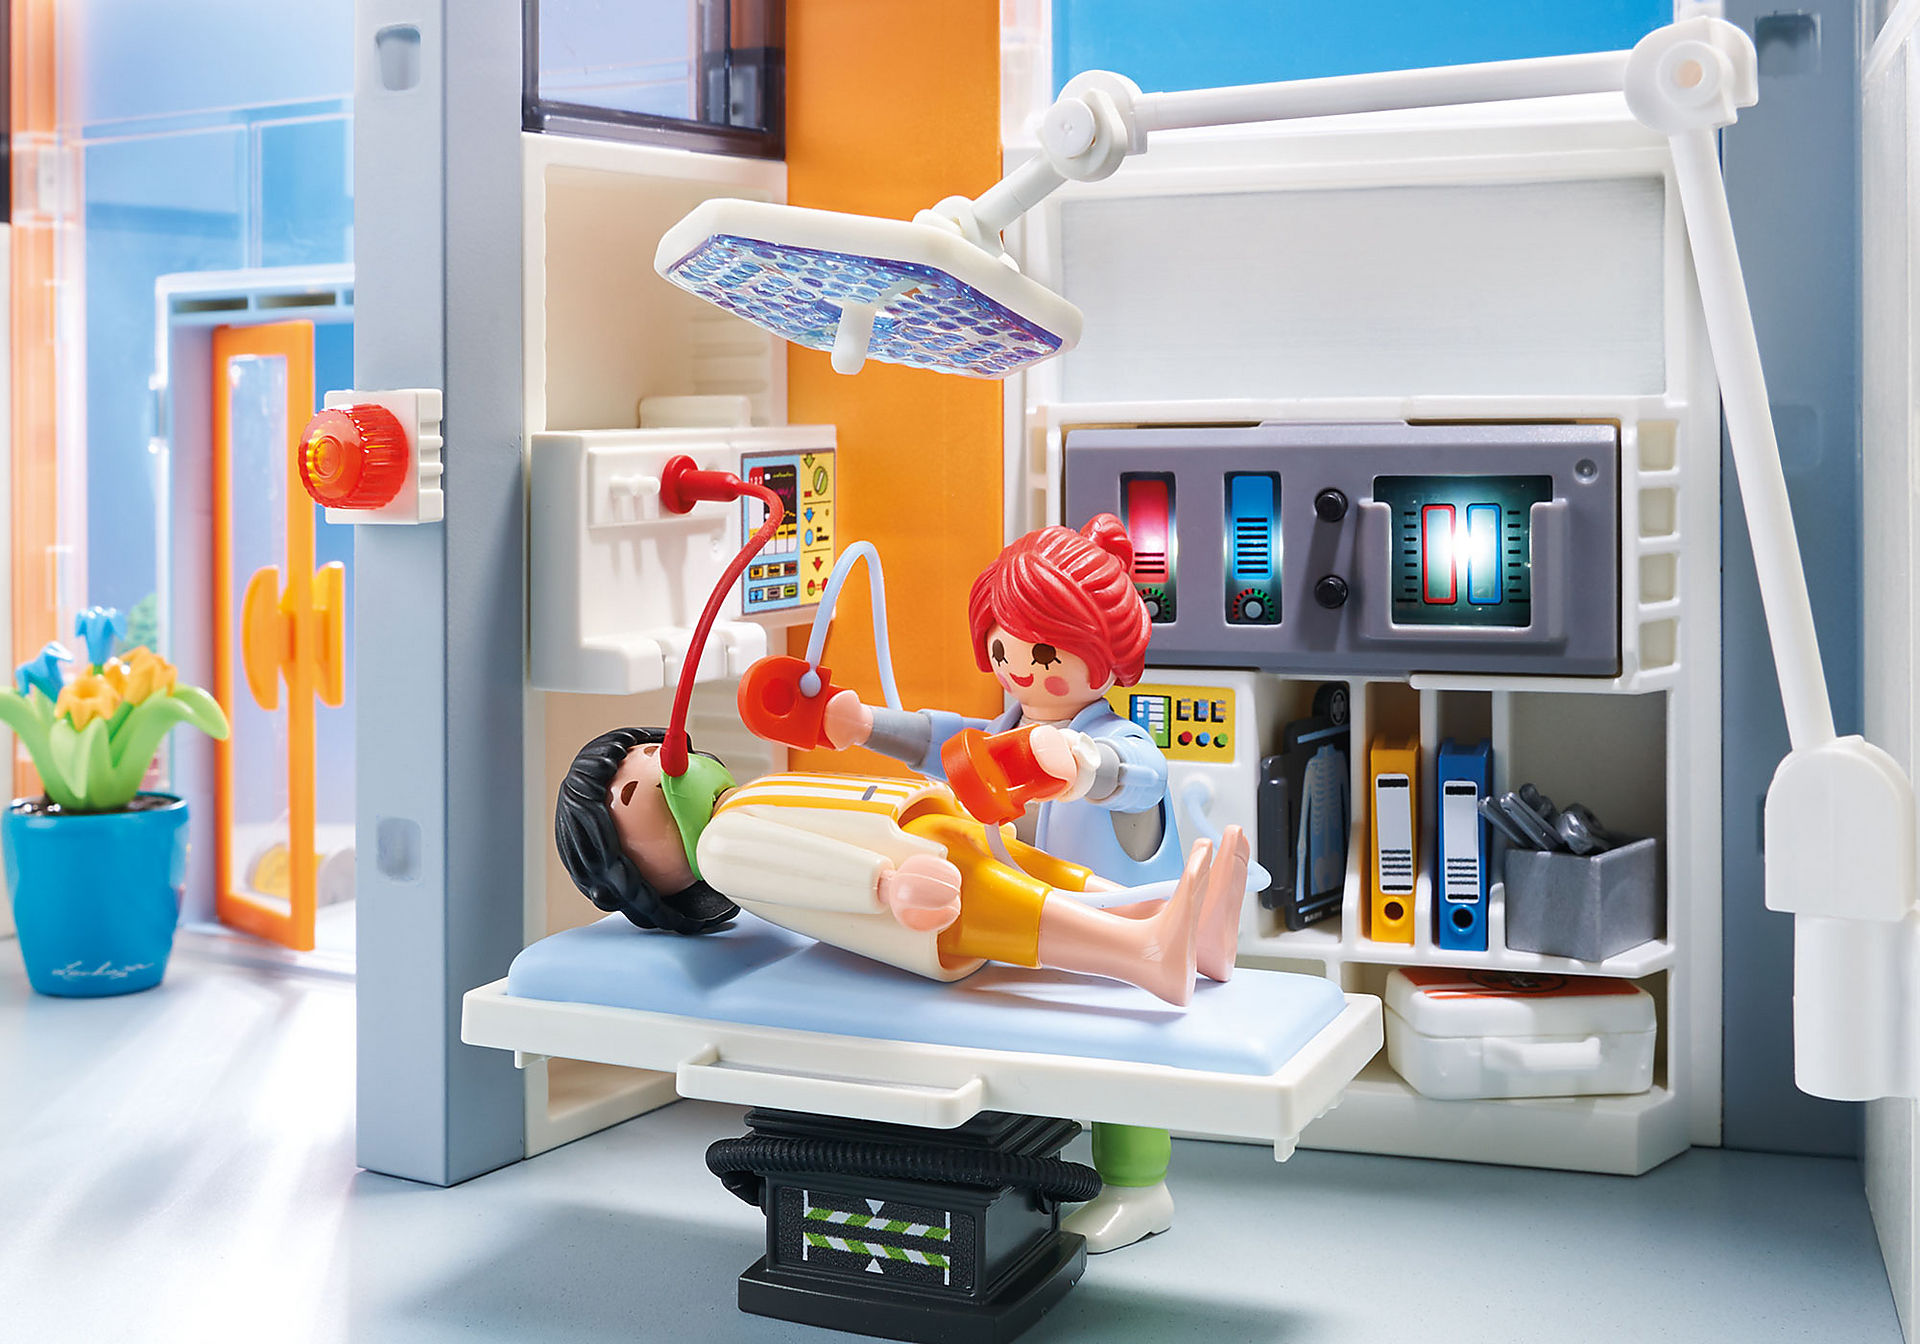 http://media.playmobil.com/i/playmobil/70190_product_extra1/Large Hospital